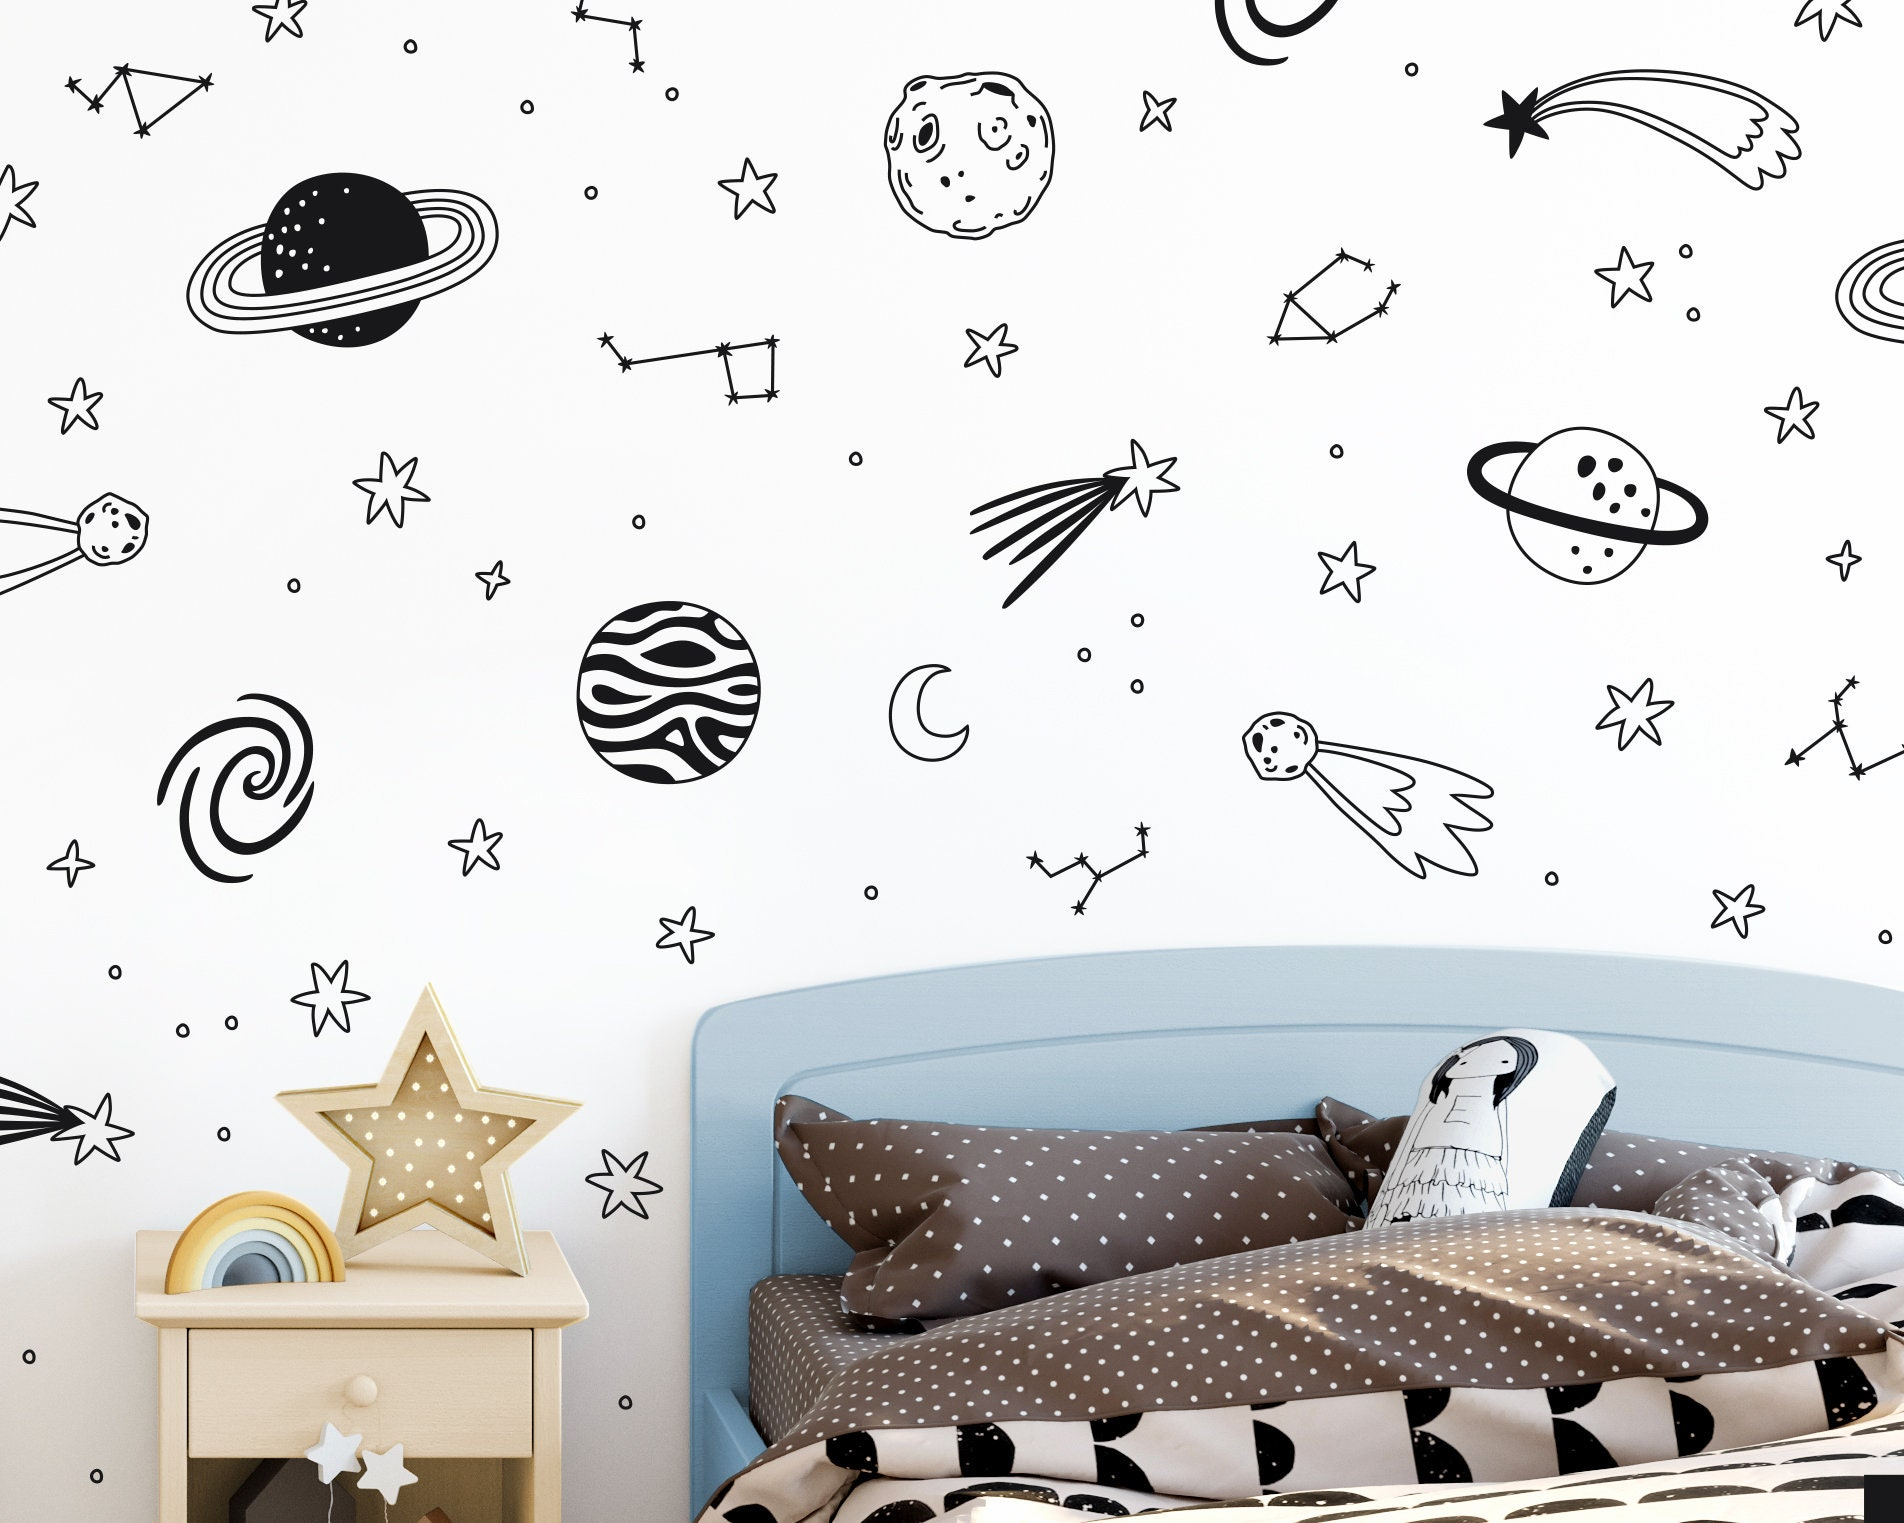 Space Wall Decals   Nursery Decals, Star Decals, Kids Room Decor, Nursery  Decor, Wall Stickers